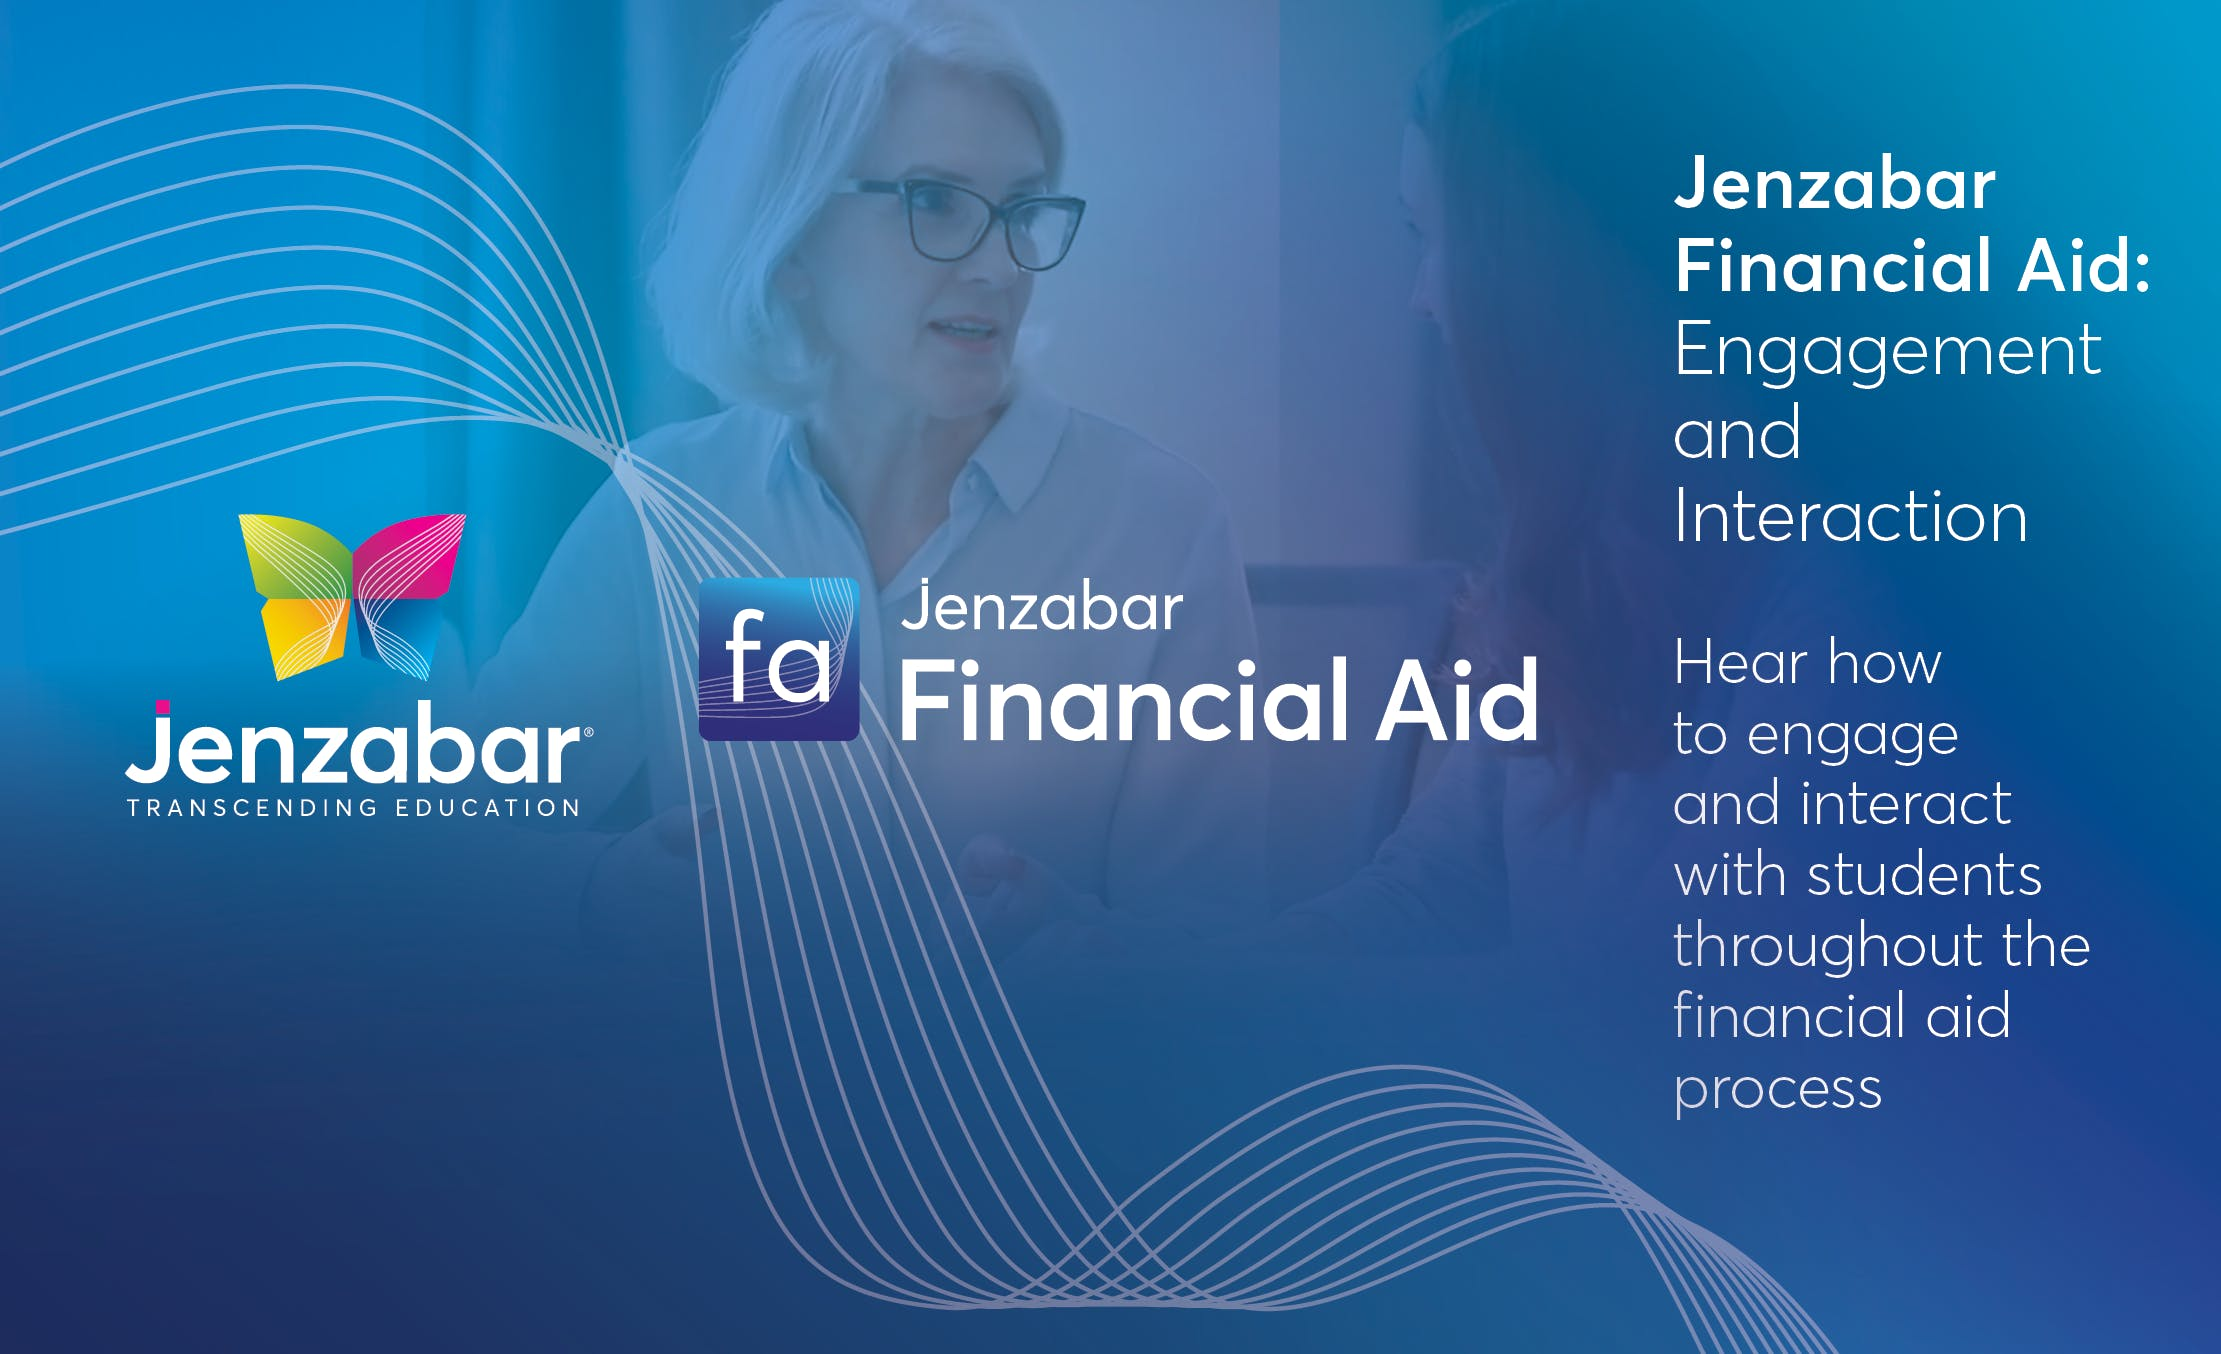 Jenzabar Financial Aid: Engagement and Interaction